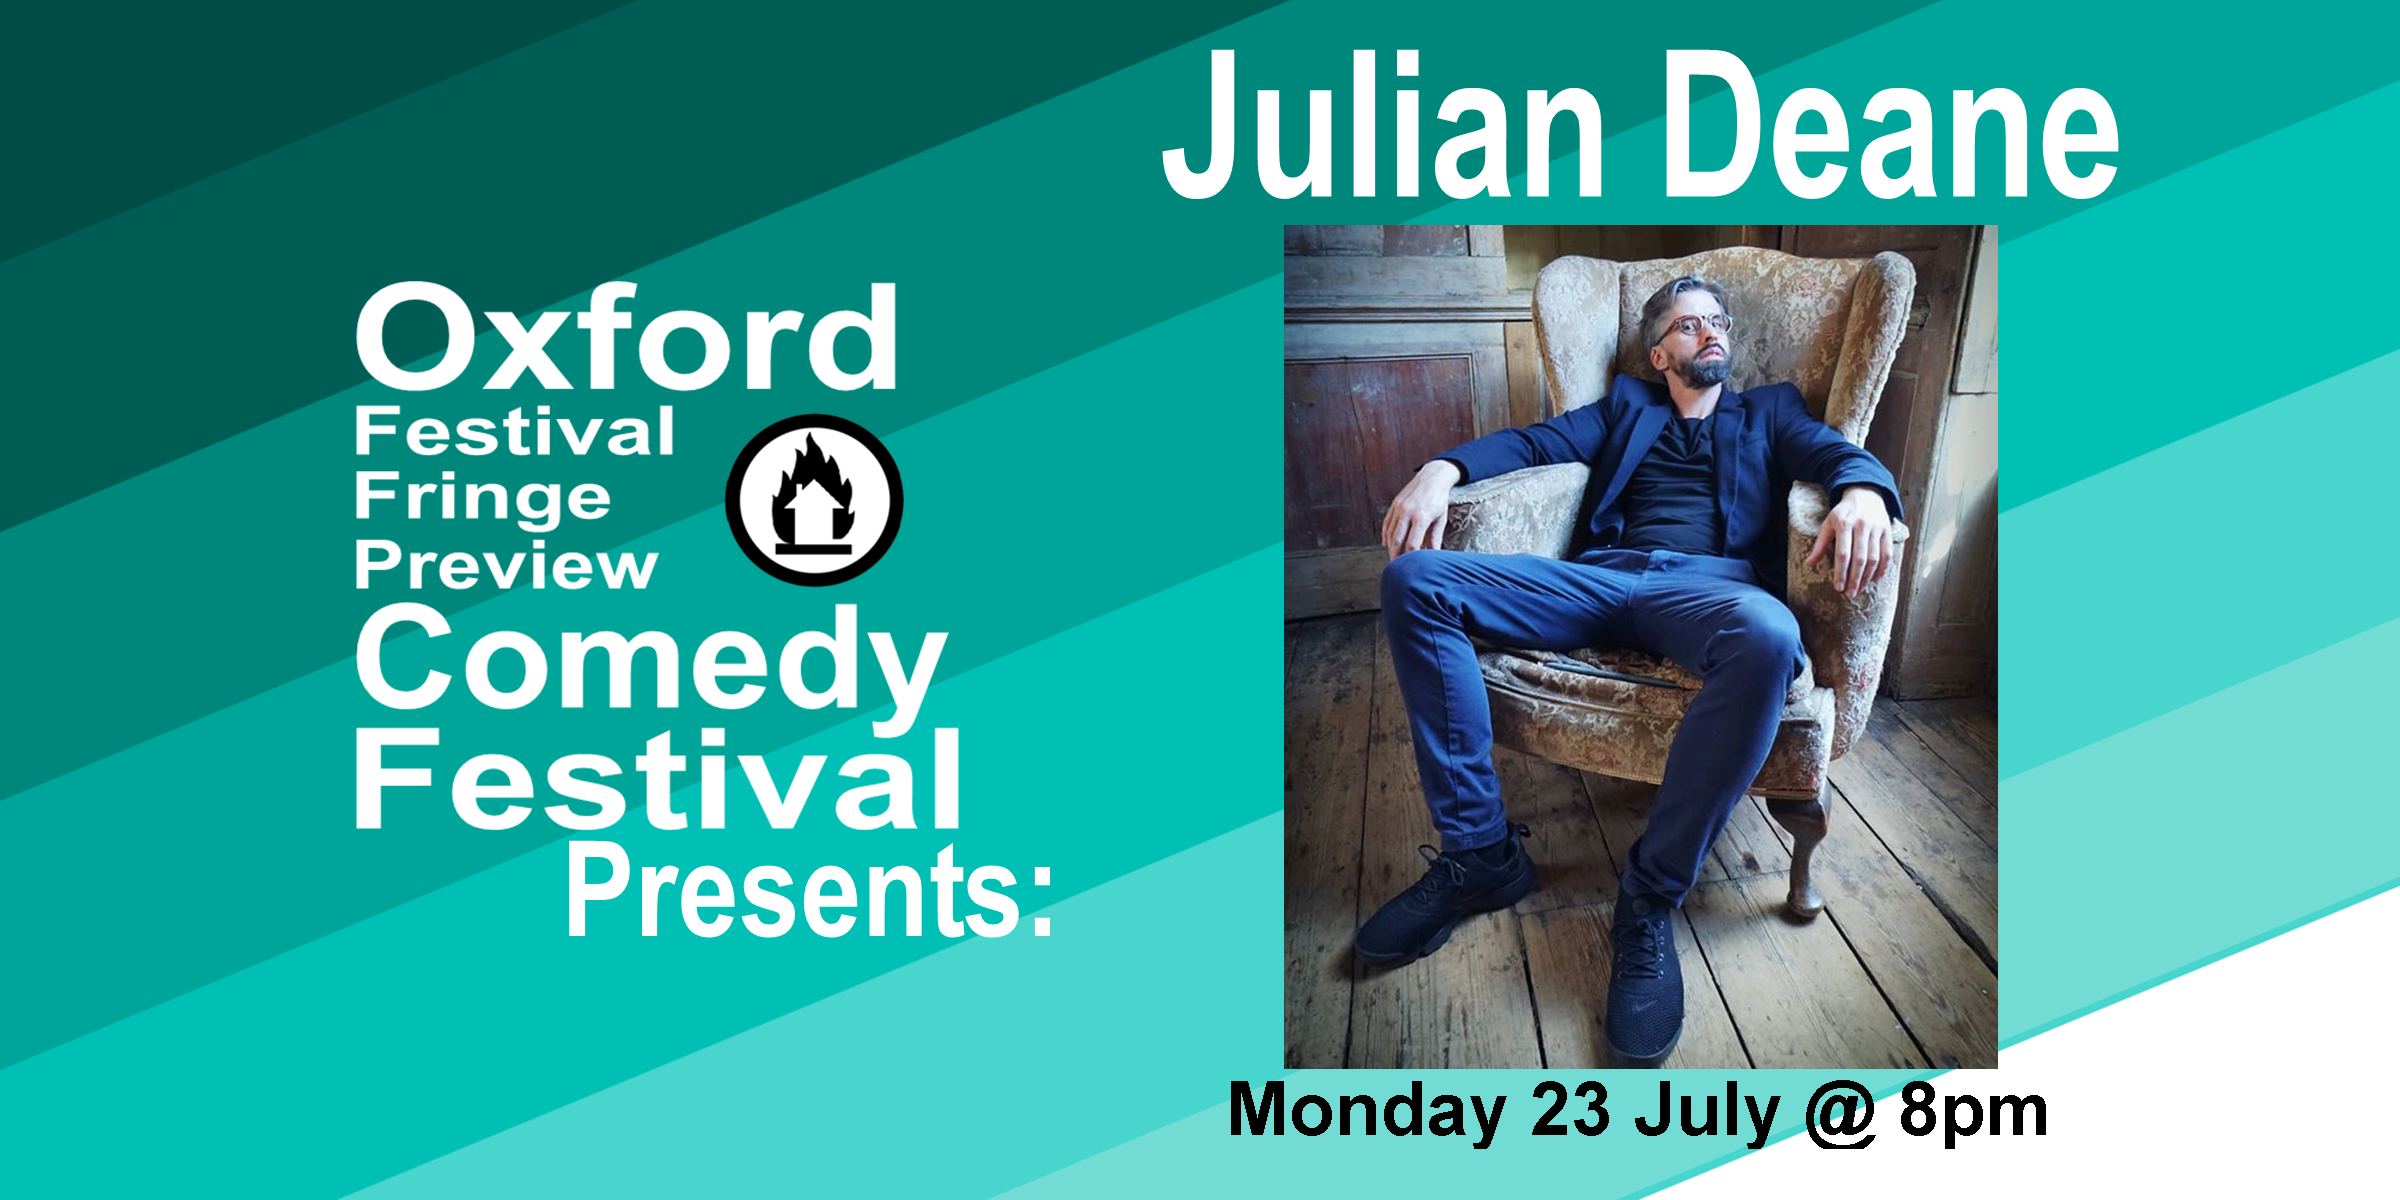 """Julian Deane has been wowing audiences across the country with his genius punch lines and perfect delivery. Julian was recently seen performing on Russell Howard's Hour and is currently supporting Paul Chowdhry on the highly-anticipated nationwide tour Live Innit. His witty writing skills have also been put to use on Matt Forde's Unspun (Dave Channel), which he wrote on in 2016. Furthermore, he has proved his talent by winning some of the most prestigious stand-up comedy competitions in the country and is also in big demand as a writer (Mock the Week, Never Mind the Buzzcocks, Morgan Spurlock's New Britannia)  All of this makes him a terrific act with a hugely exciting future ahead of him.  """"Deliciously twisted… a stream of seriously good gags… quick, sharply written and endlessly repeatable lines"""" The Guardian  """"It's just a matter of time before Julian Deane gets a boost up the comedy rankings… His trick is to make you think you're watching standard stand-up fare, then twisting expectations with sharp, original punchlines"""" The Independent  """"Assured and brilliant… Deane is a class apart… a master of hilarious twists and turns"""" Chortle  Doors at 7:30/Show at 8pm  60 minutes    Get Your Tickets Here!"""